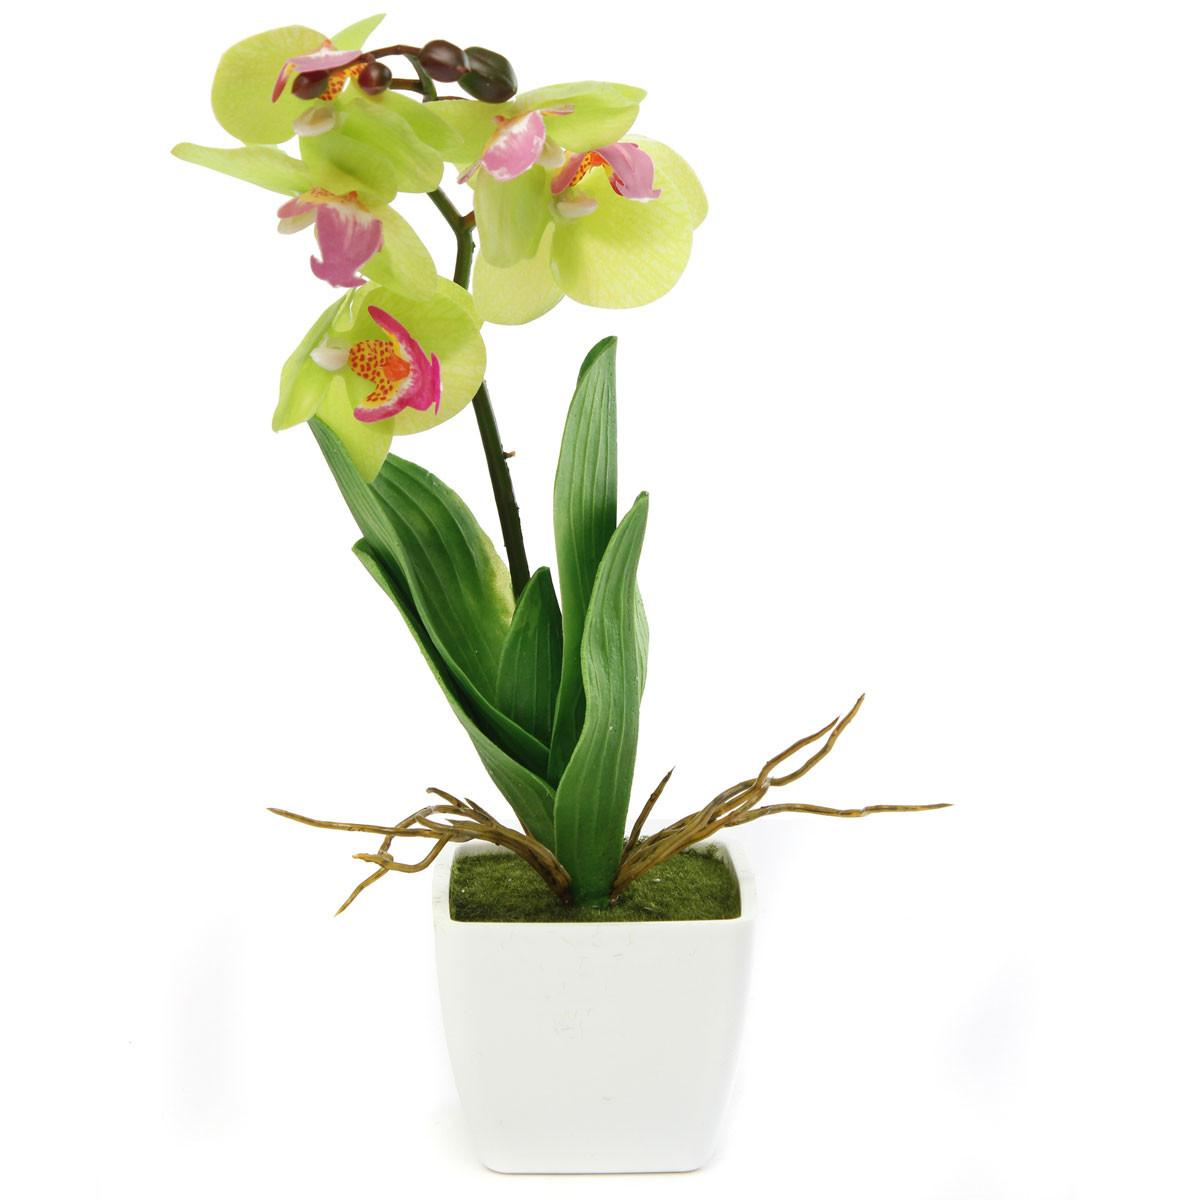 Artificial Potted Plant Orchid Pot Green Houseplant